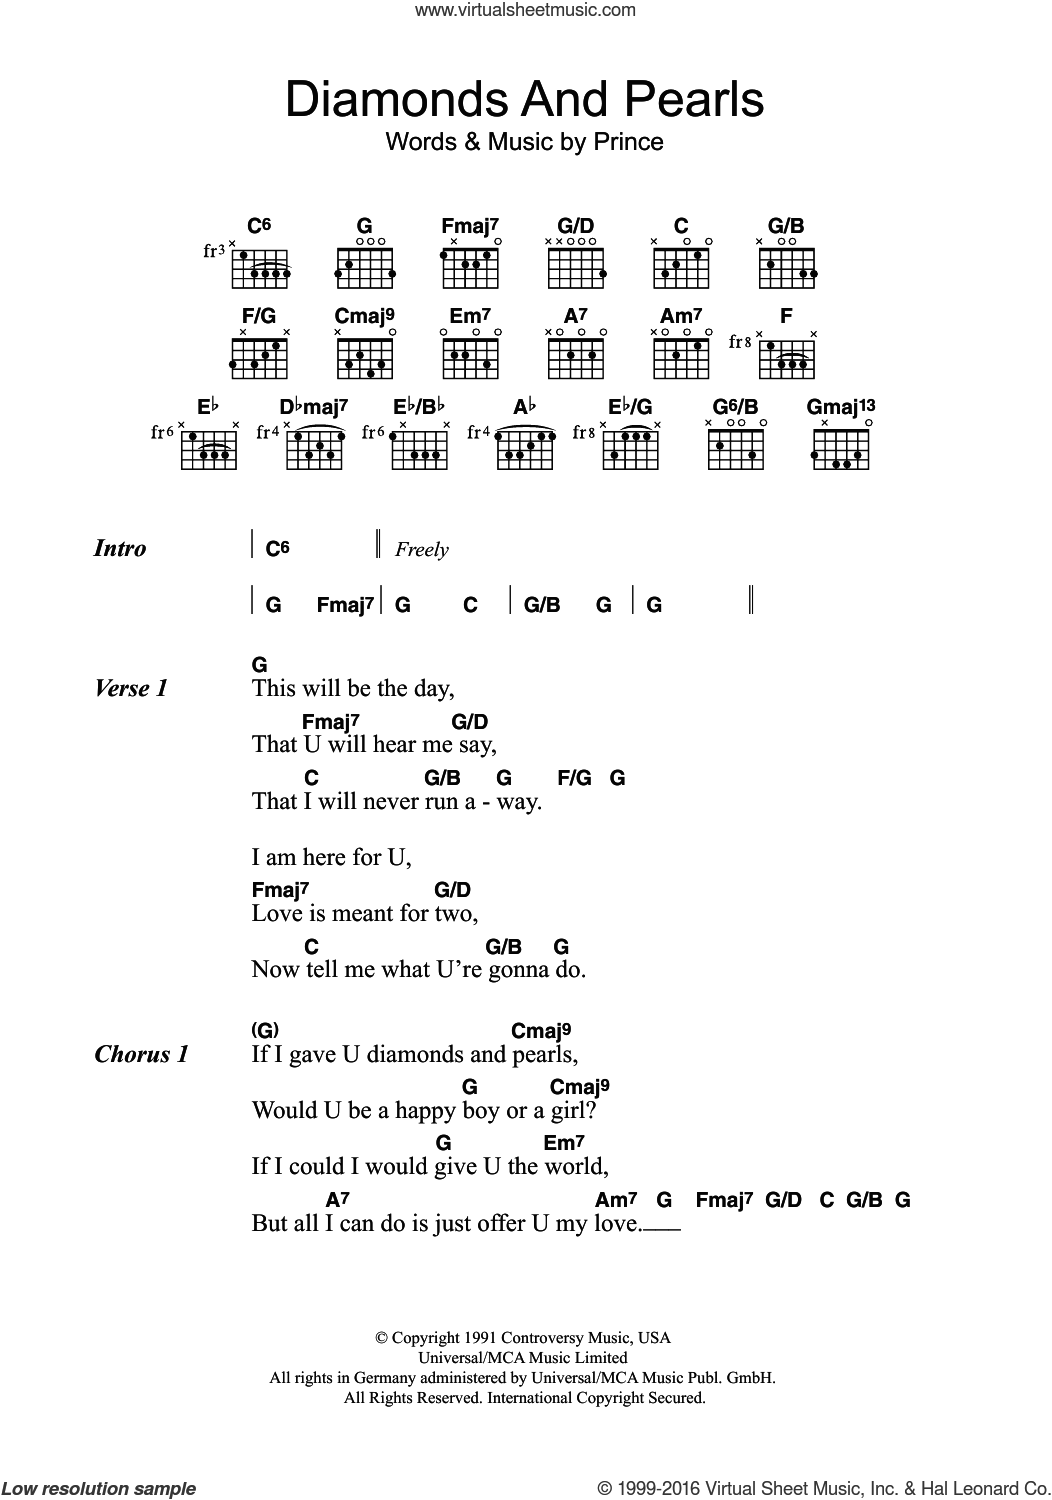 Prince Diamonds And Pearls Sheet Music For Guitar Chords